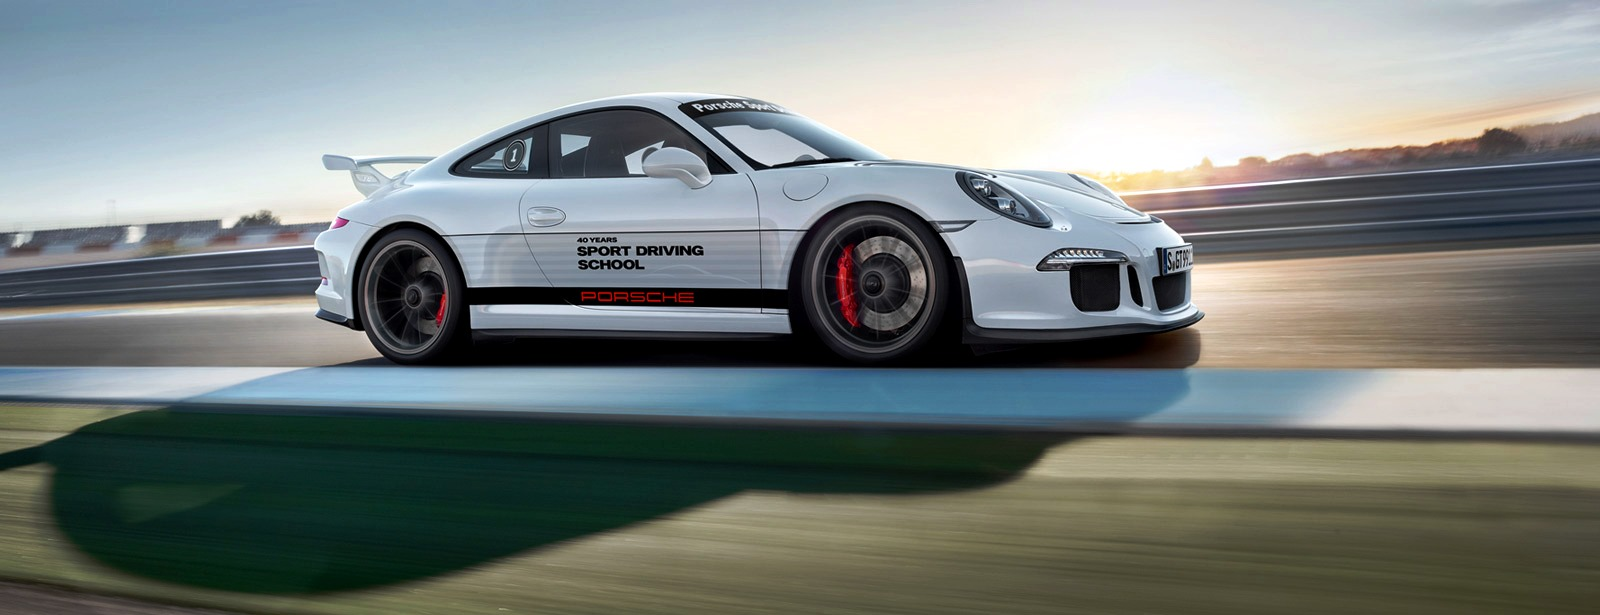 Porsche Driving School >> Video 40 Jahre Porsche Sport Driving School Still Searching The